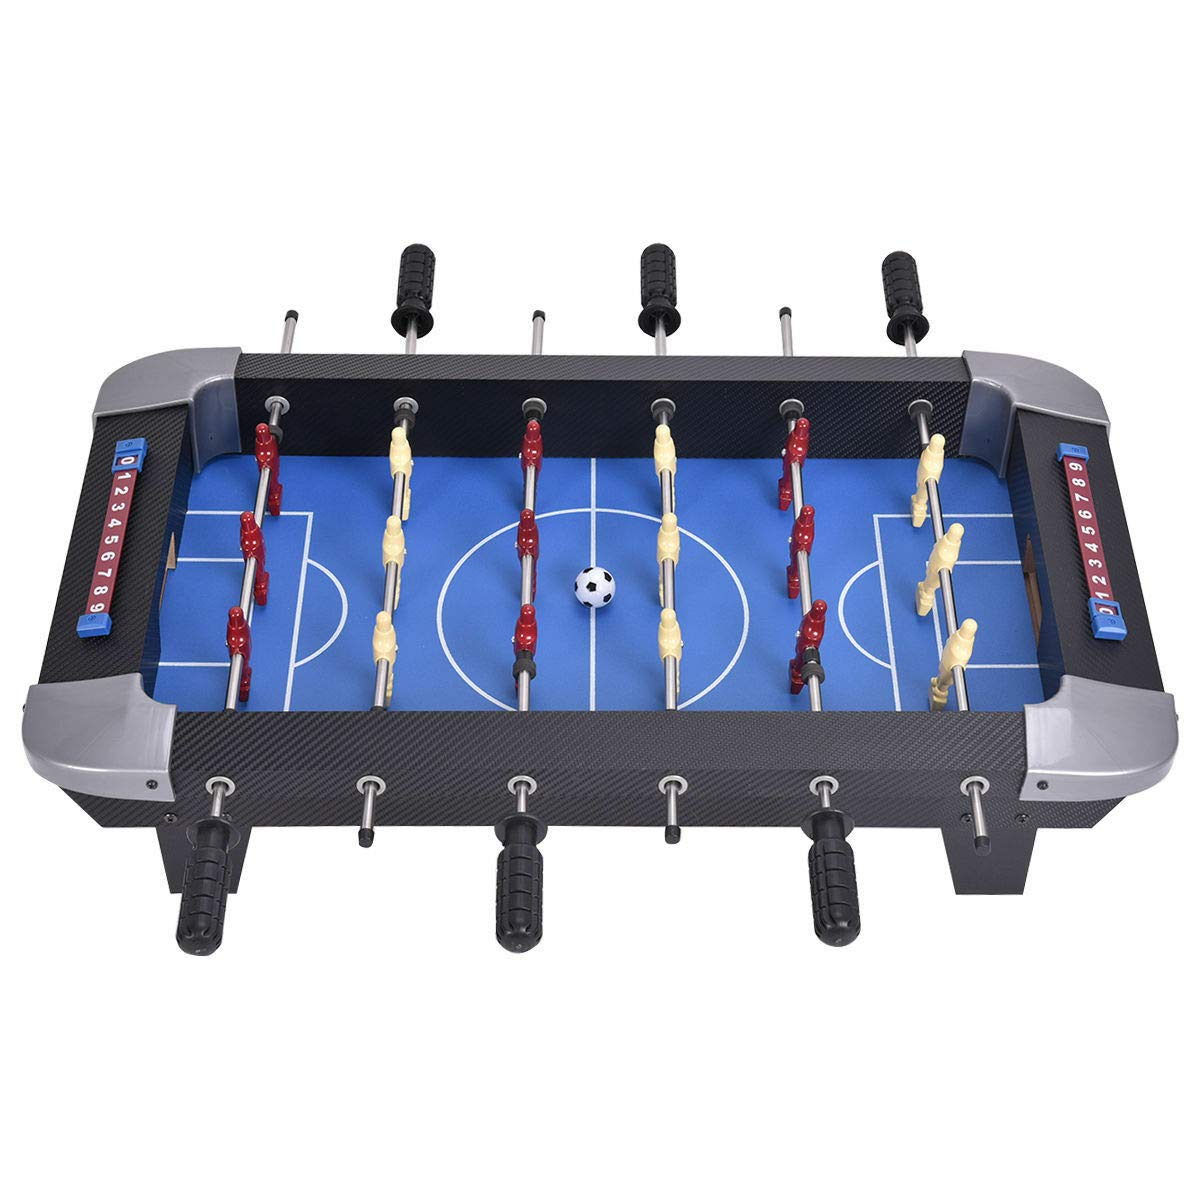 Handybirdy 28'' Mini Foosball Football Soccer Ball Table Game Tabletop Set Portable Kids New Sports Indoor by Handybirdy